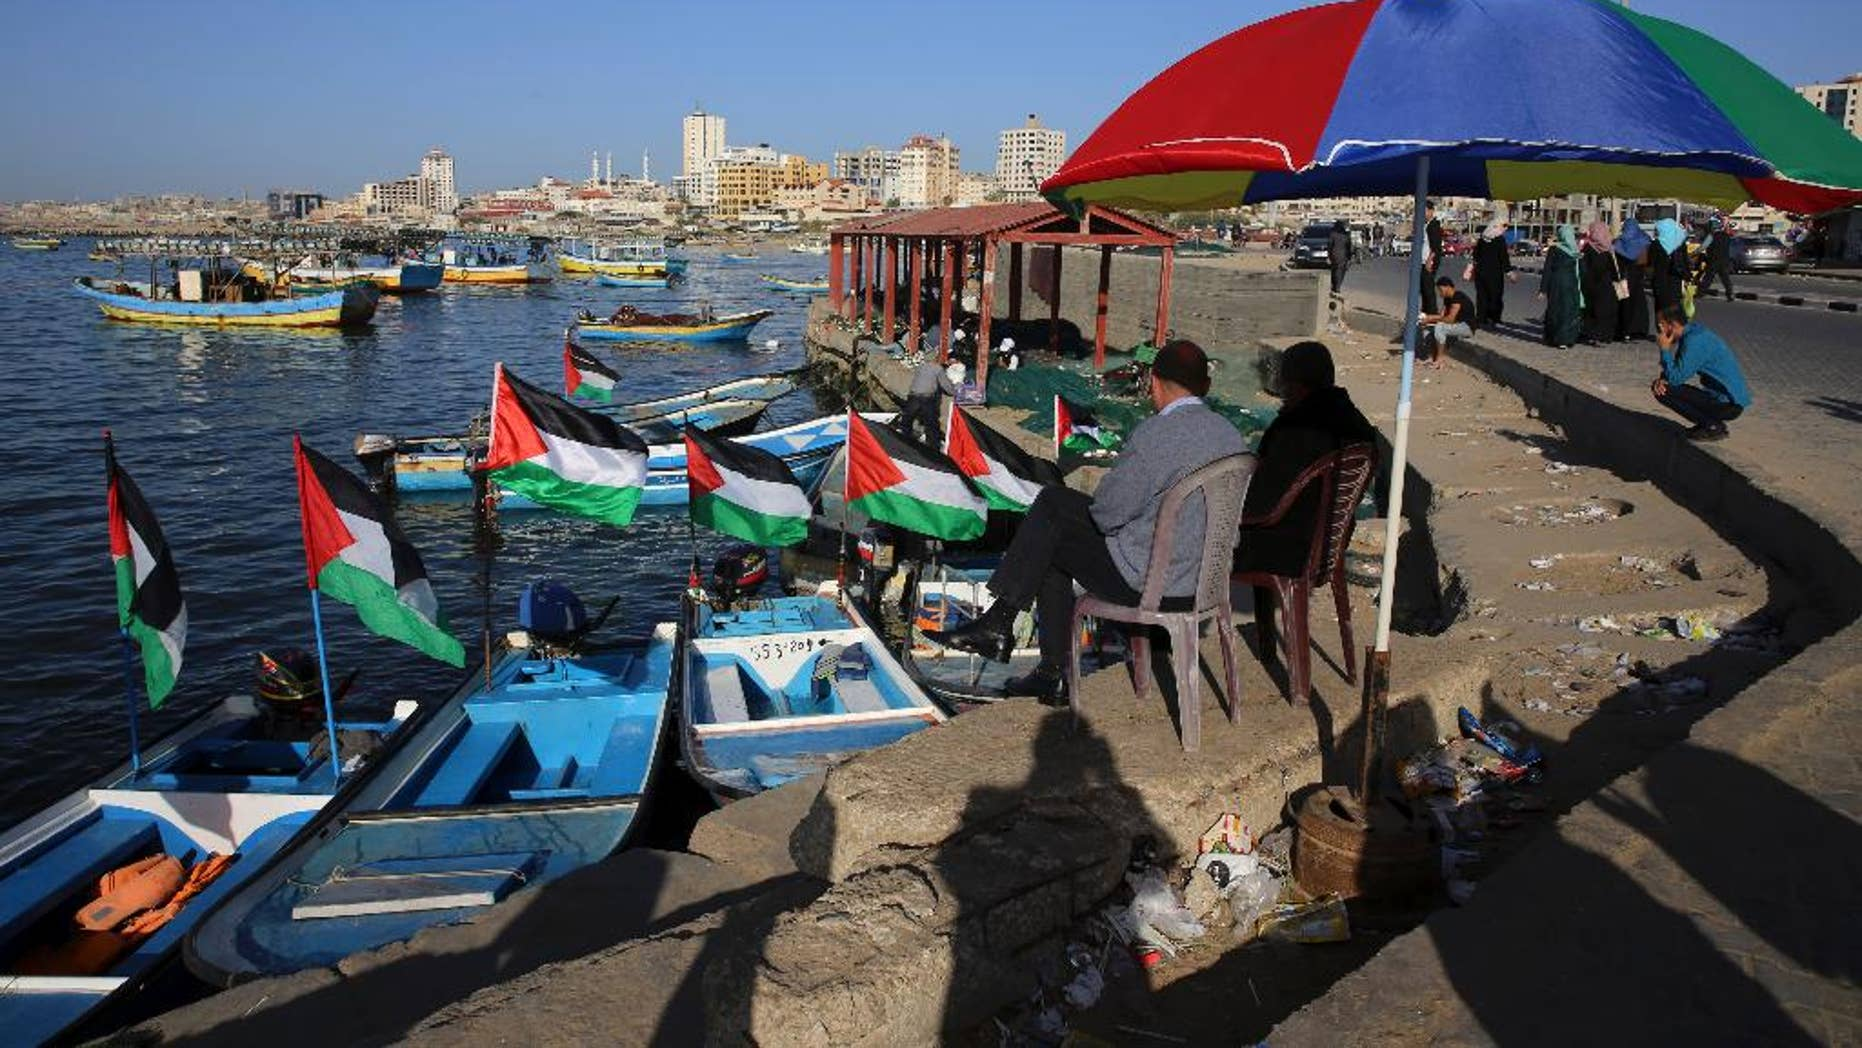 """File - In this Sunday, April 17, 2016 file photo, Palestinians protect themselves from the sun at the fishermen port in Gaza City. Israel's transportation minister Yisrael Katz said he is pushing for the construction of an """"artificial island"""" off the coast of Hamas-ruled Gaza to alleviate hardship in the blockaded coastal strip.With Israel and Egypt maintaining a naval blockade of Gaza, the Palestinians have long been pleading for a port to connect them to the rest of the world. (AP Photo/Adel Hana, File)"""